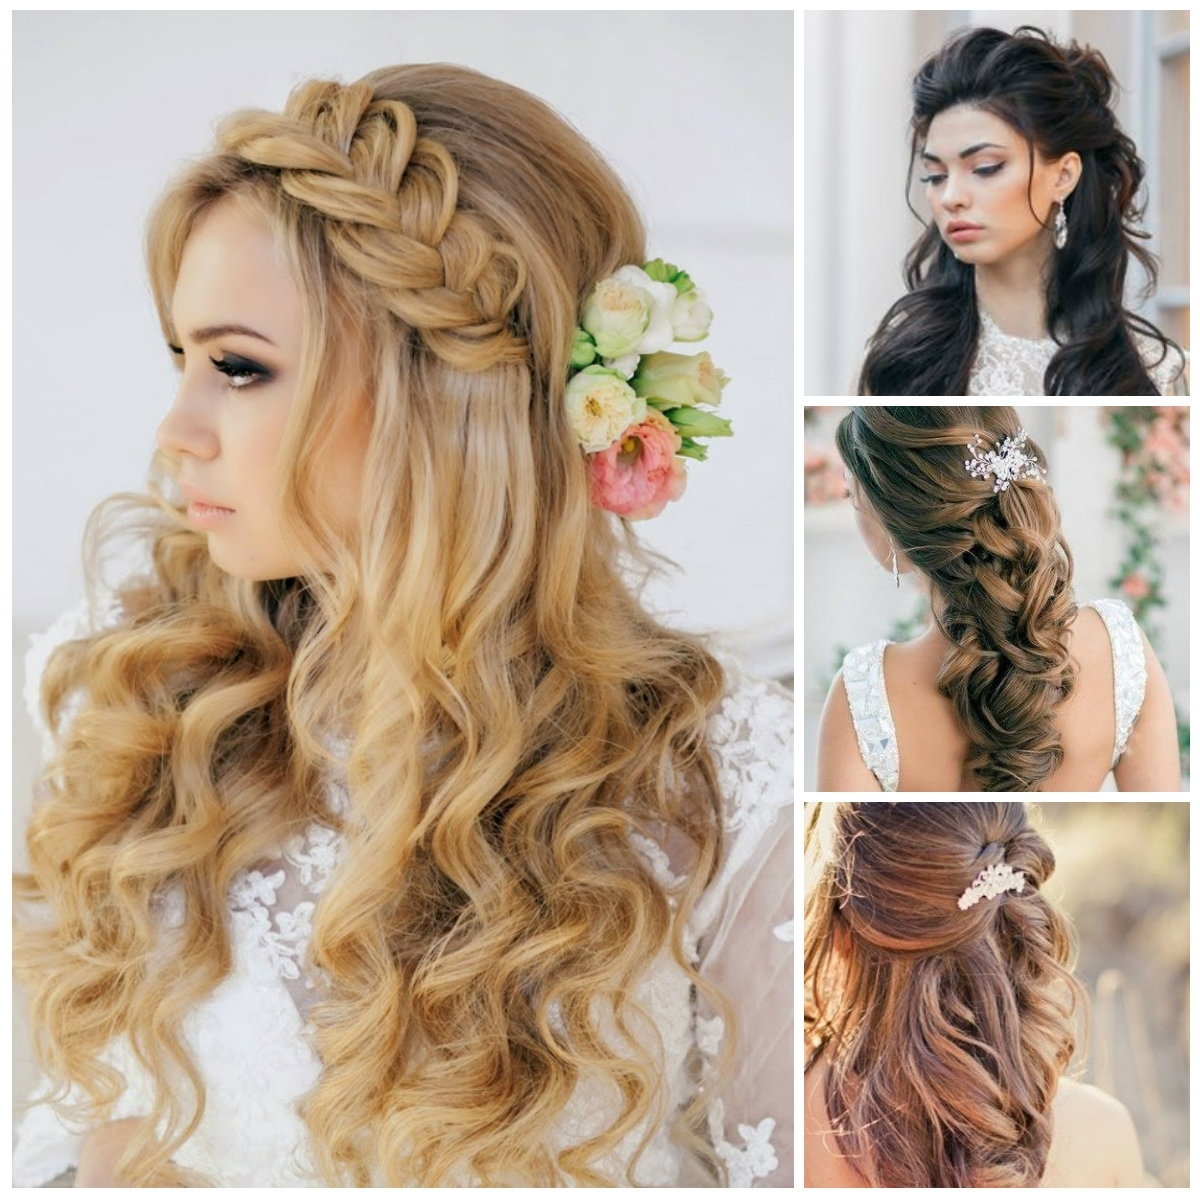 Famous Casual Wedding Hairstyles For Long Hair Regarding Wedding Half Half Hairstyles For 2018 – 2019 – Best Hairstyles Ideas (View 6 of 15)